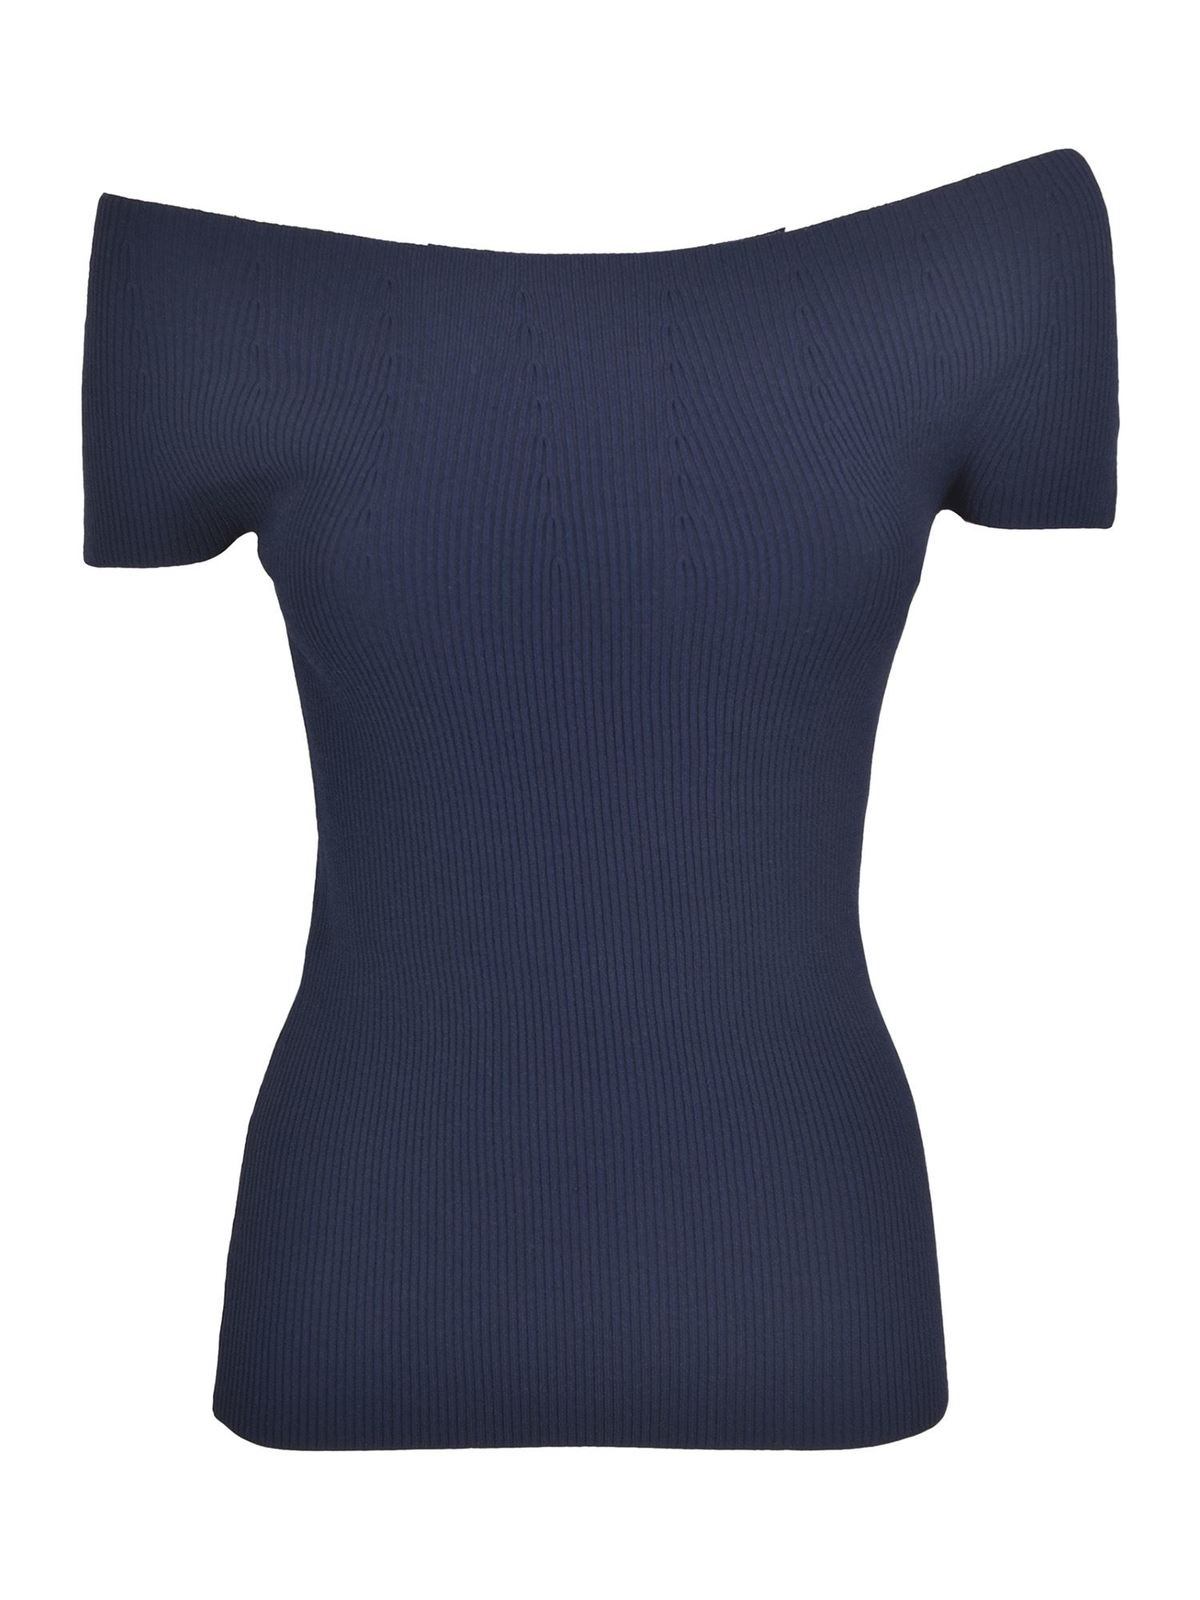 Theory Tanks OFF-THE-SHOULDER TOP IN MIDNIGHT COLOR